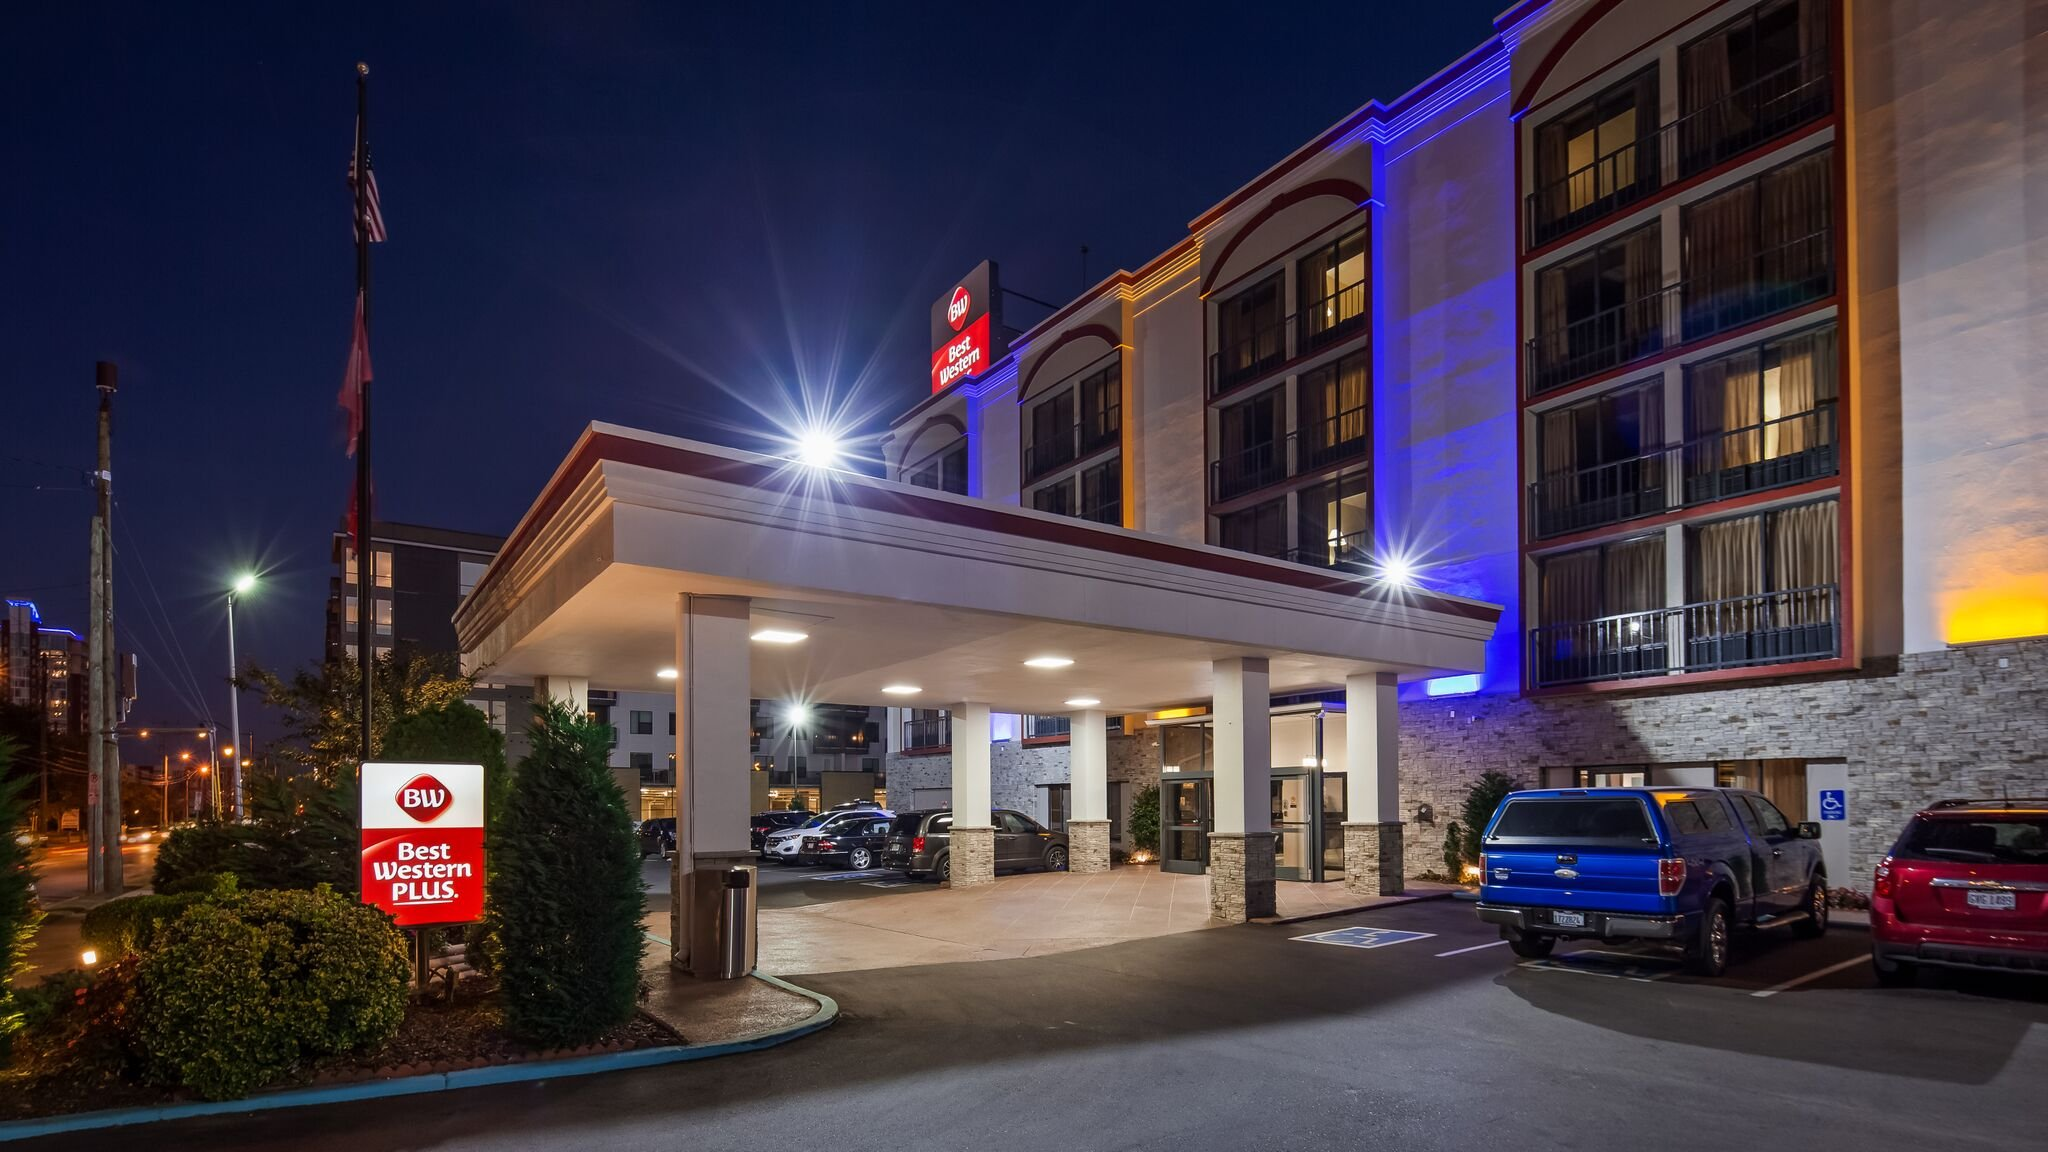 Home Best Western Plus Music Row Book Direct To Save